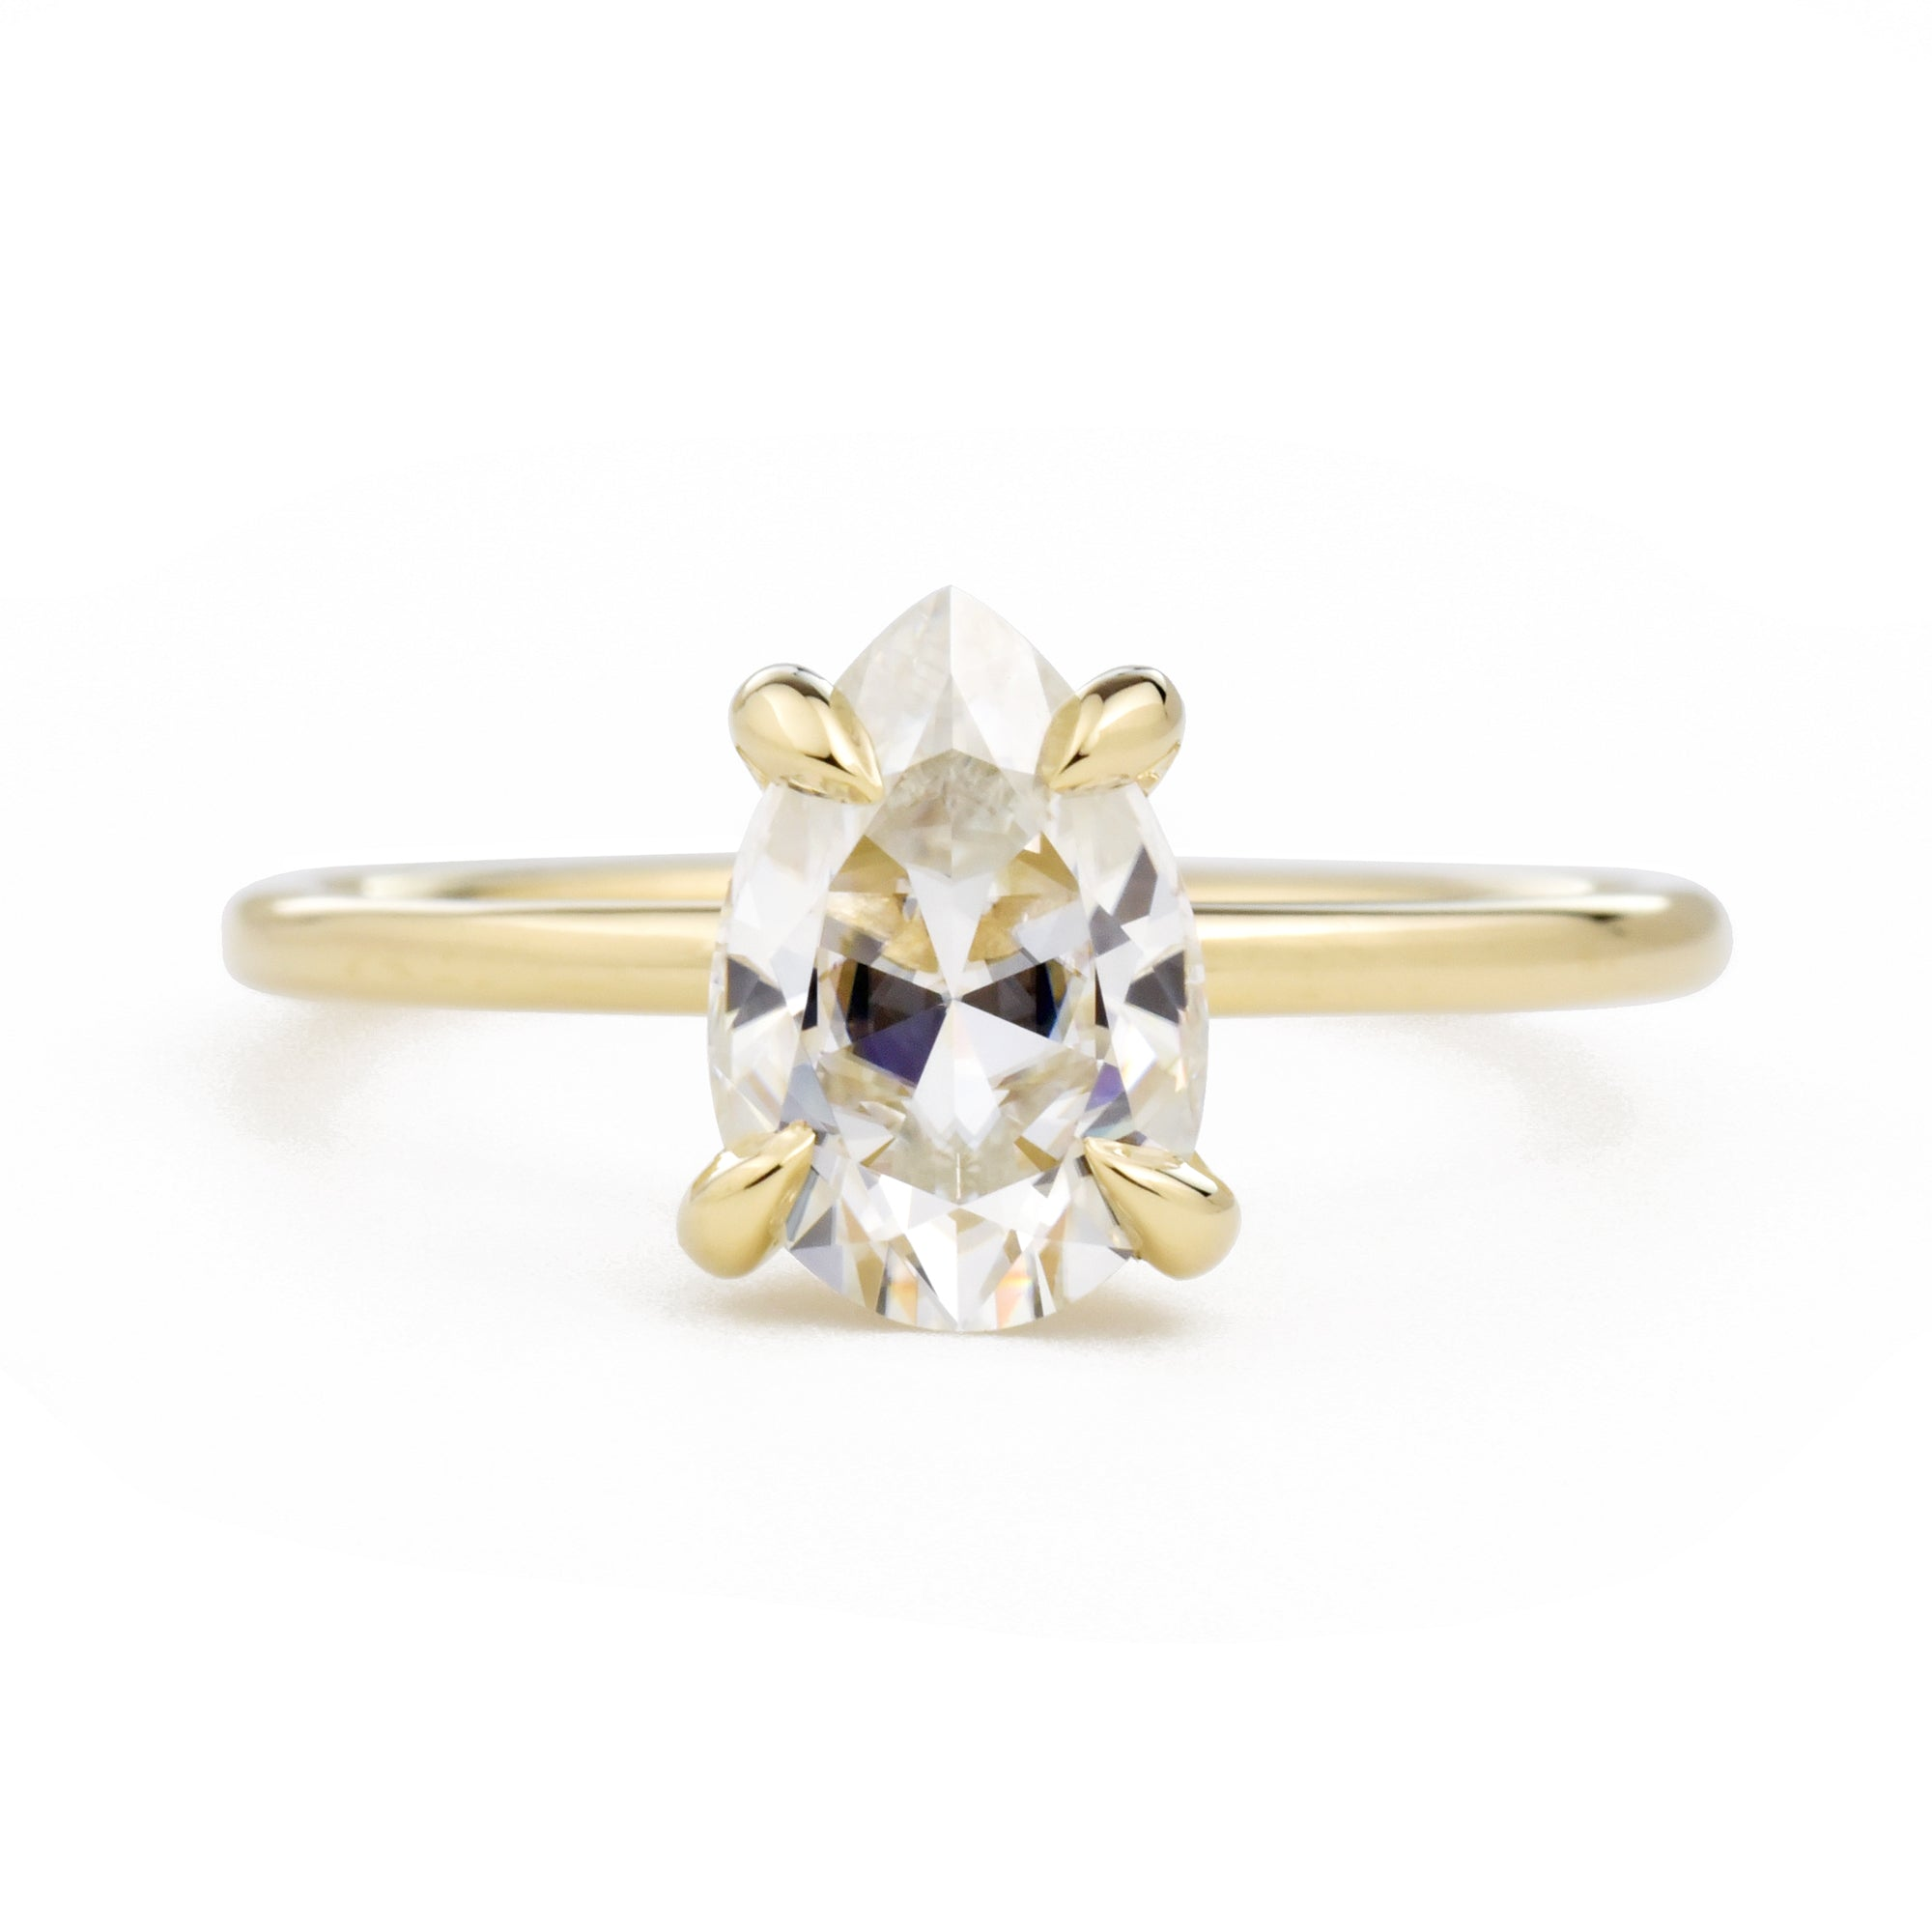 Vera Pear 1.5ct Moissanite Solitaire Engagement Ring in yellow gold